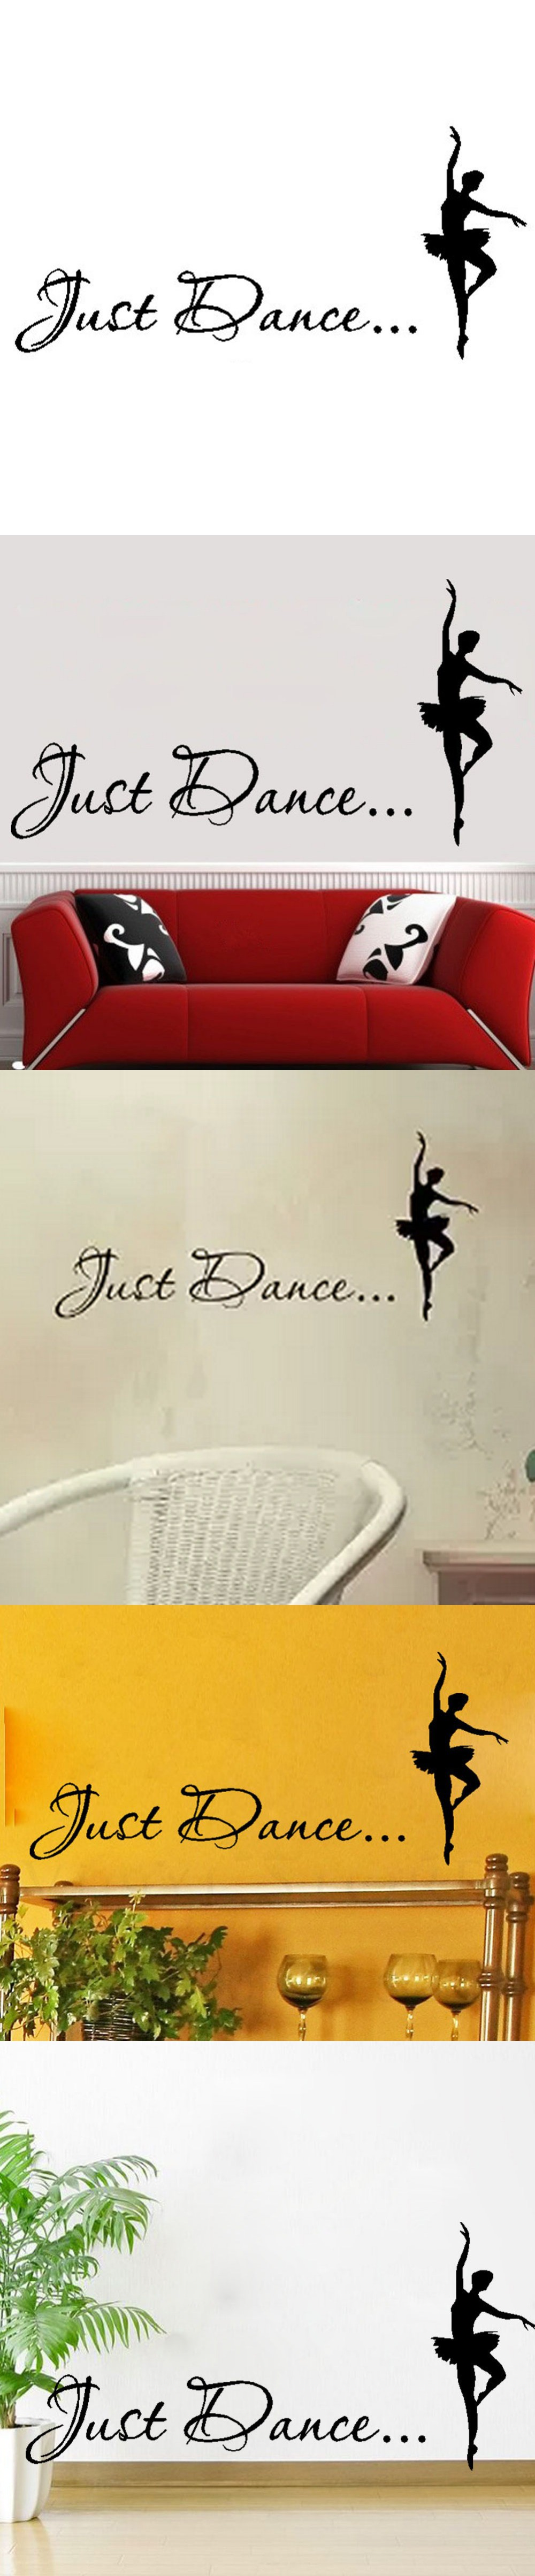 Just dance elegant ballet dancer vinyl wall art inspirational quotes